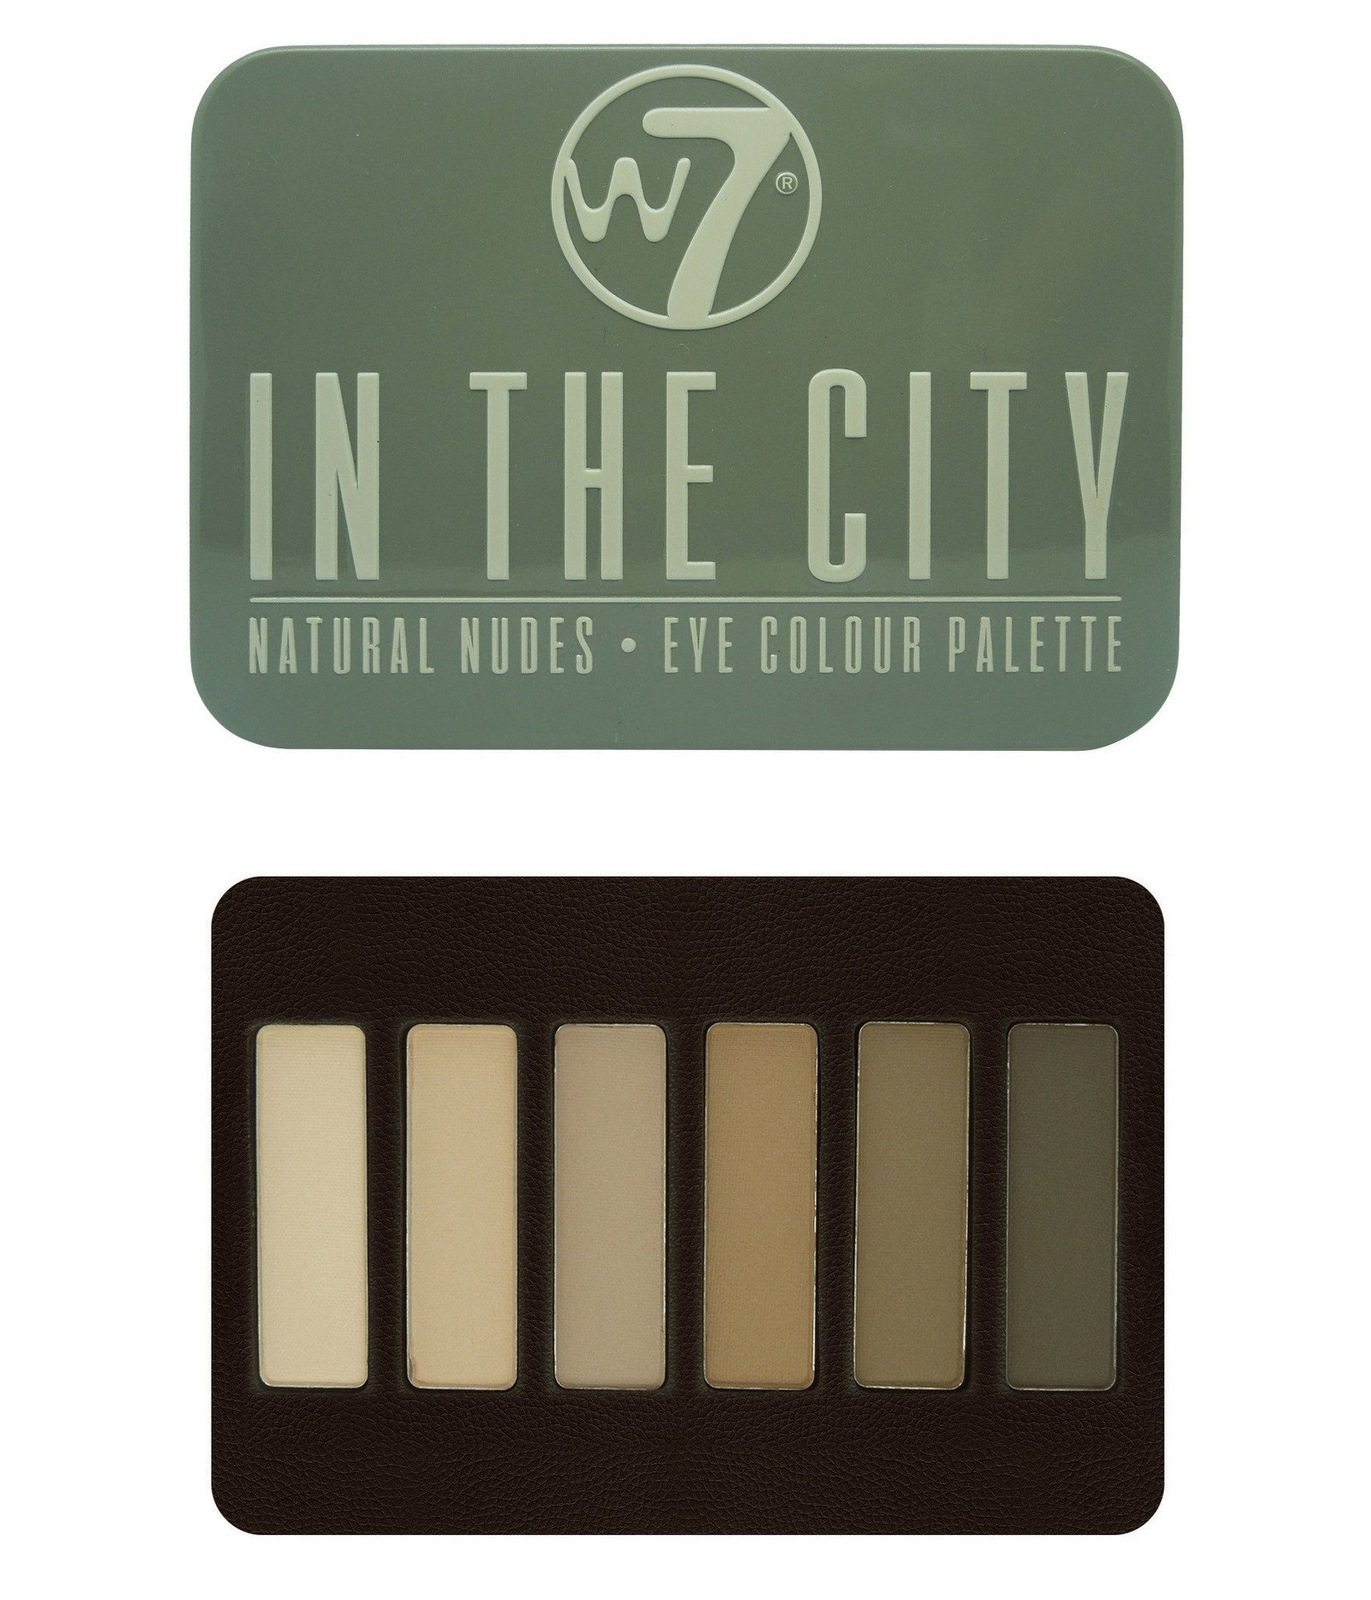 W7 In the City Eyeshadow Compact image